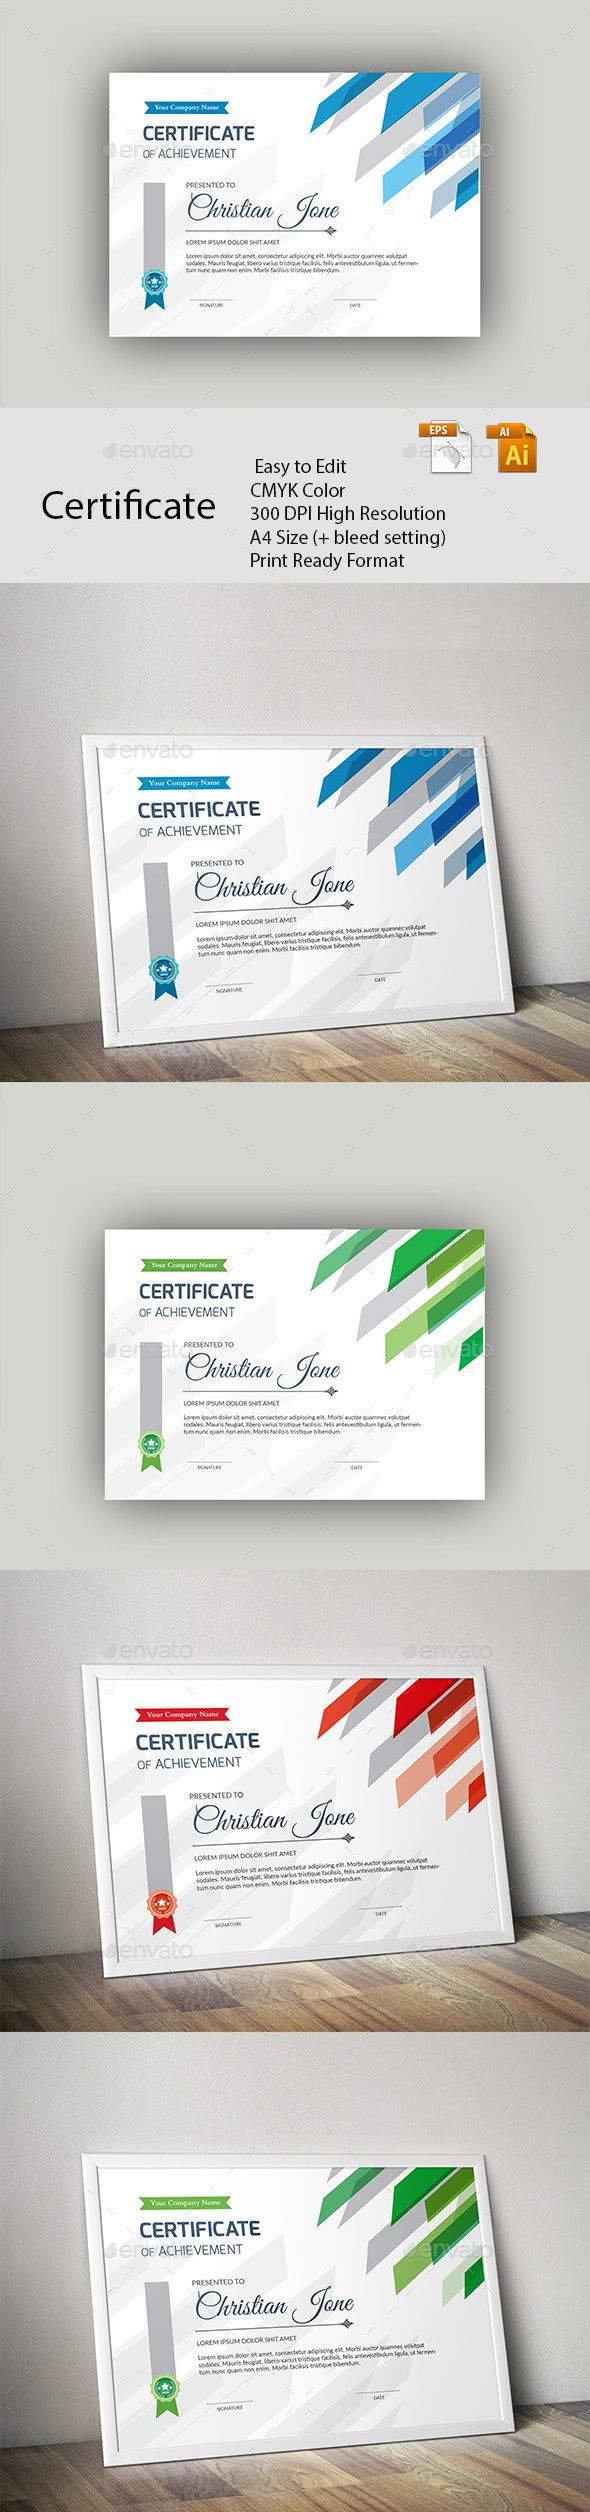 Certificate A GREAT CREATIVE CERTIFICATE TEMPLATE FOR CREATIVE PERSON. FEATURES:      Easy to Edit     CMYK Color 4 color version     300 DPI High Resolution     A4 Size (+ bleed setting)     Print Ready Format     Free Fonts      FILES INCLUDES:     8 Ai & EPS files     read me.pdf